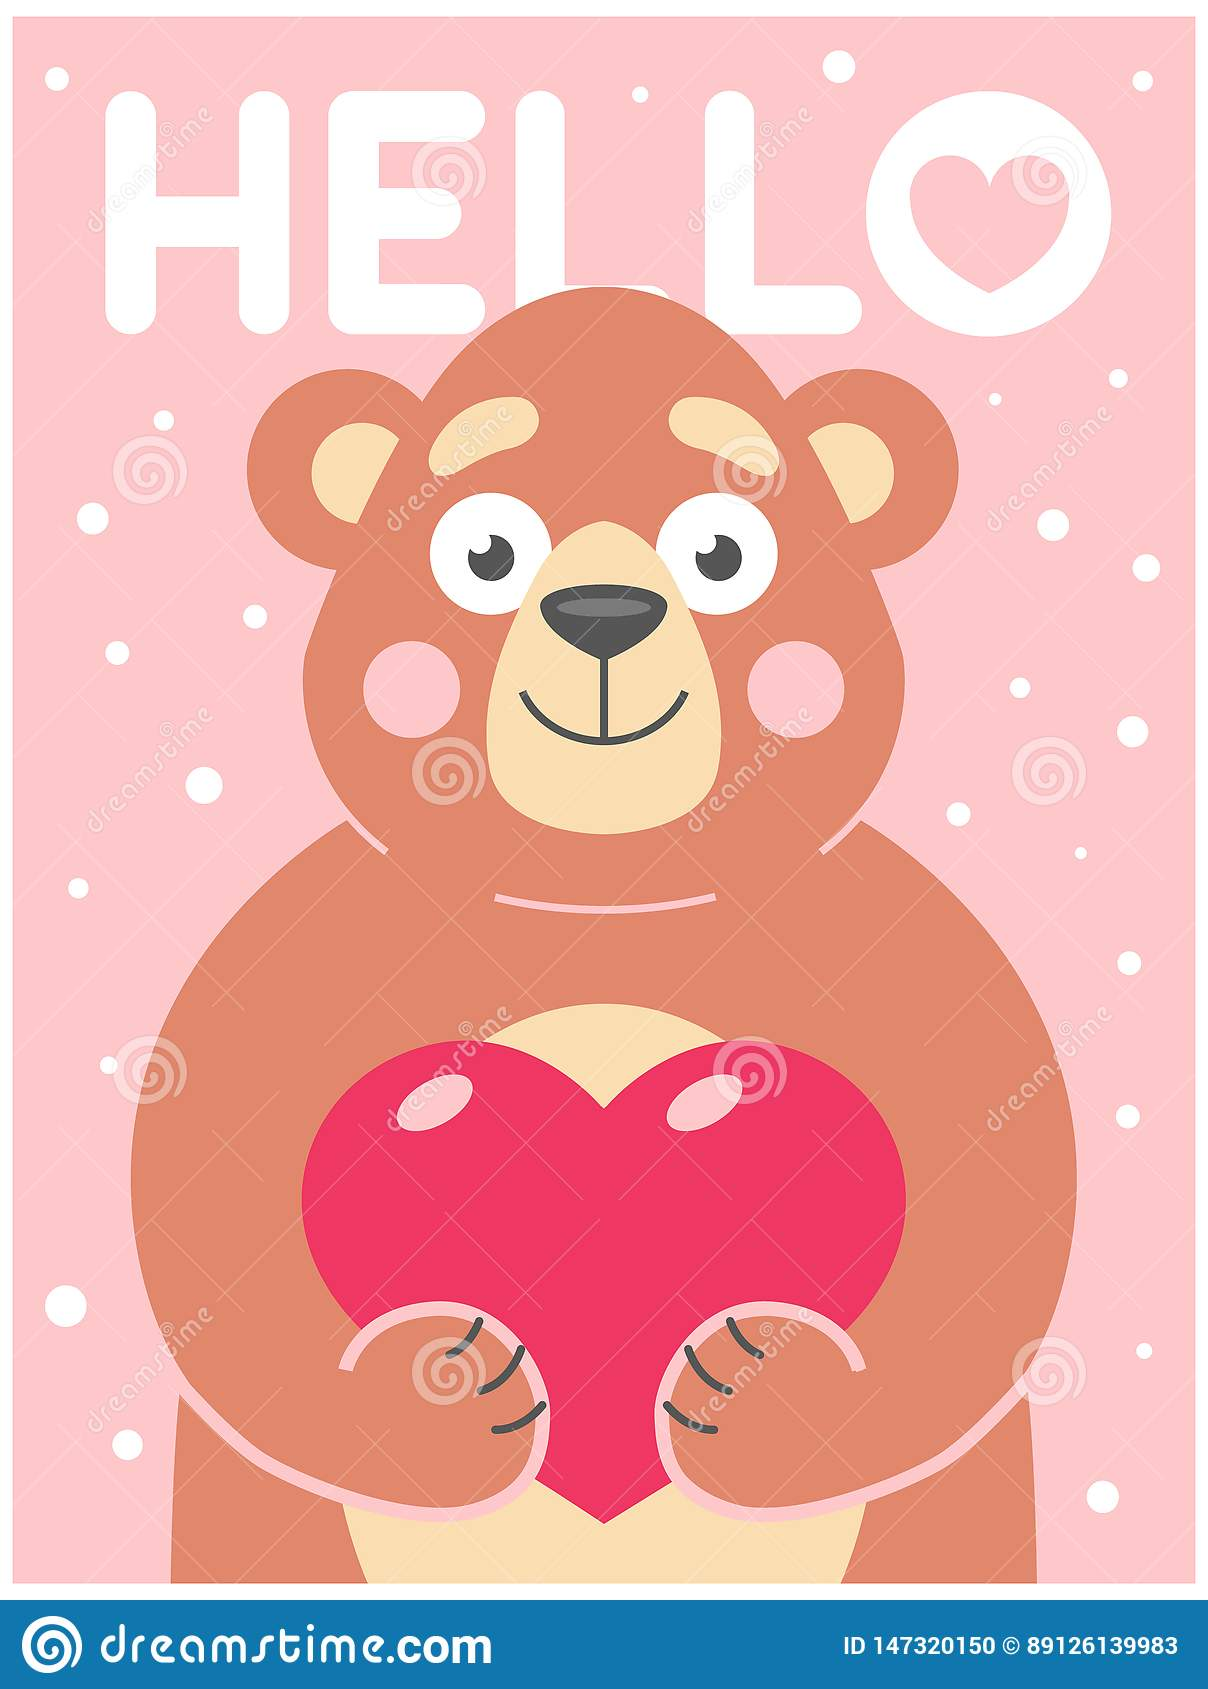 Cute bear holds in his paws a heart on a pink background with snowflakes.